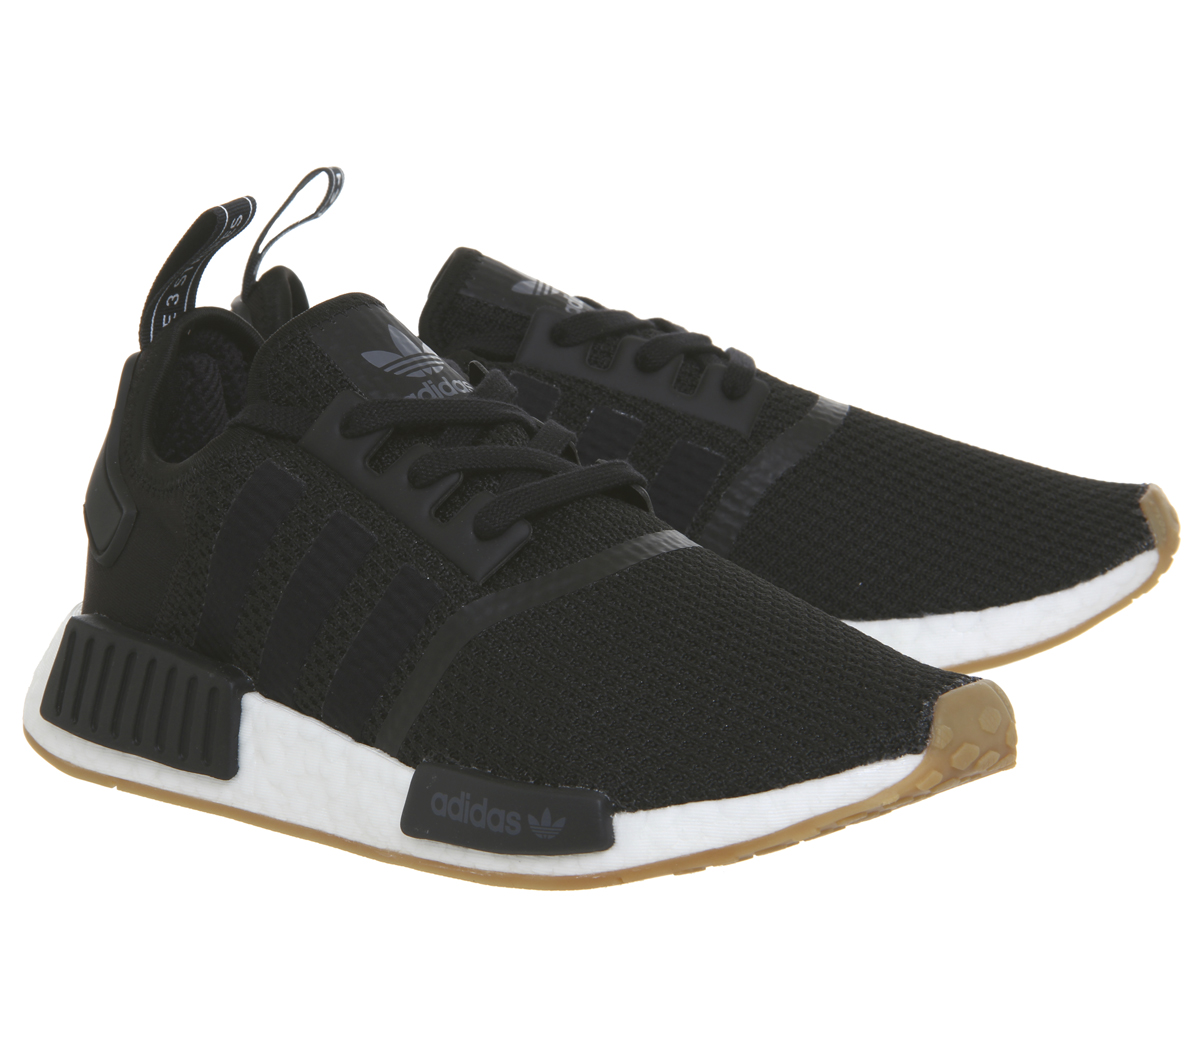 newest ea00b b3b02 Sentinel Adidas Nmd R1 Trainers CORE BLACK CORE BLACK GUM Trainers Shoes